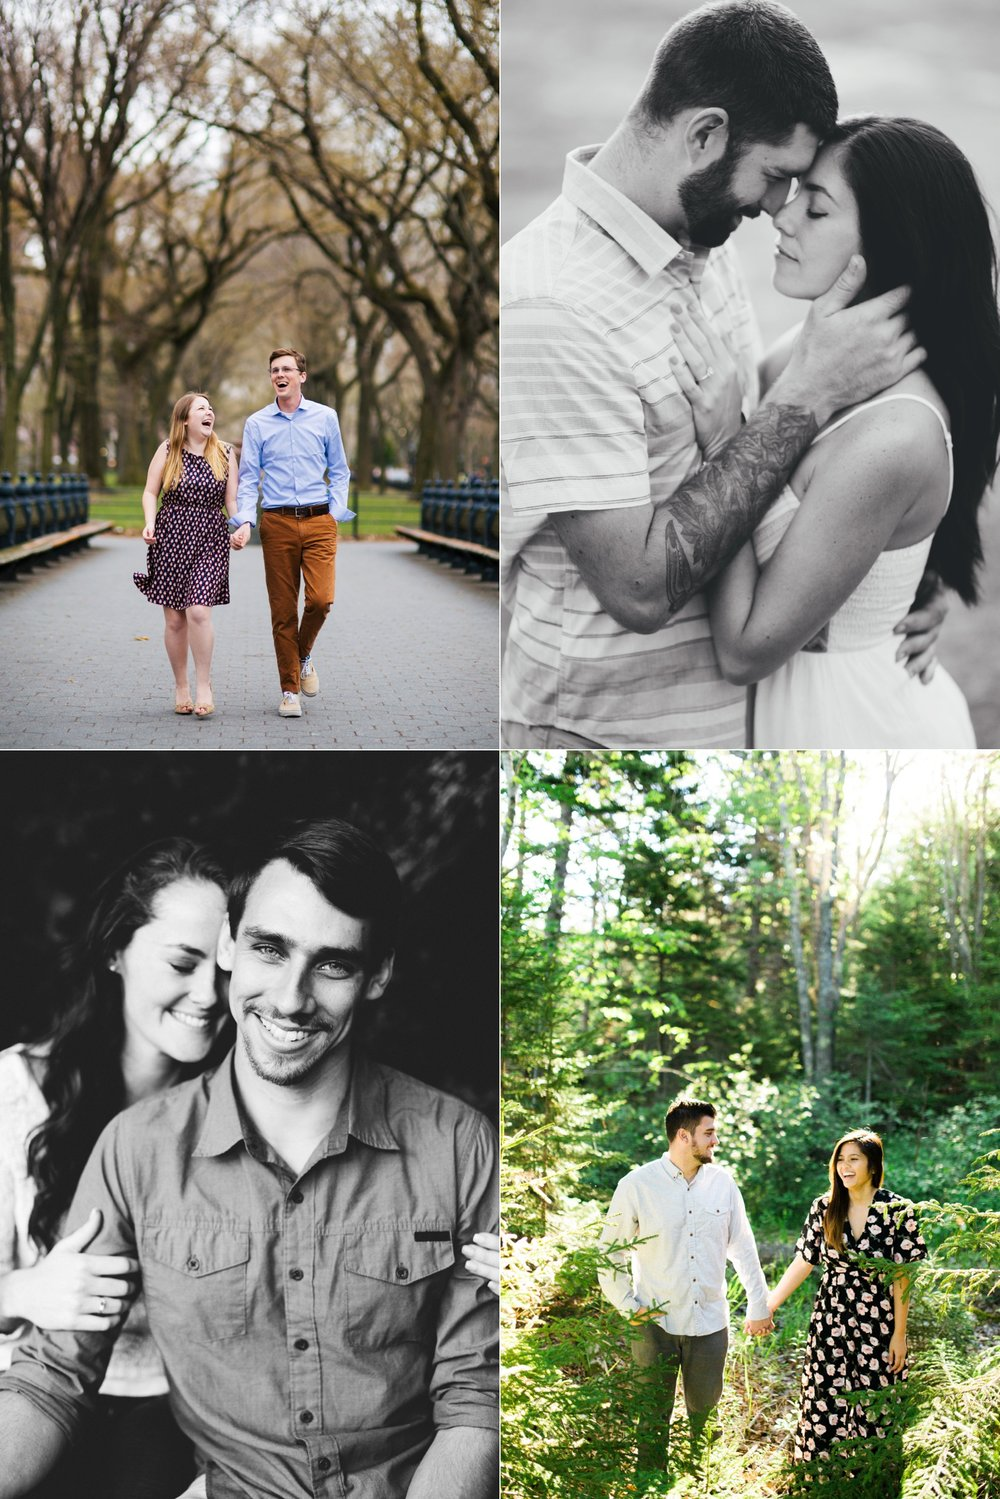 Jake & Katie Photography Best of Couples 2016-061.jpg